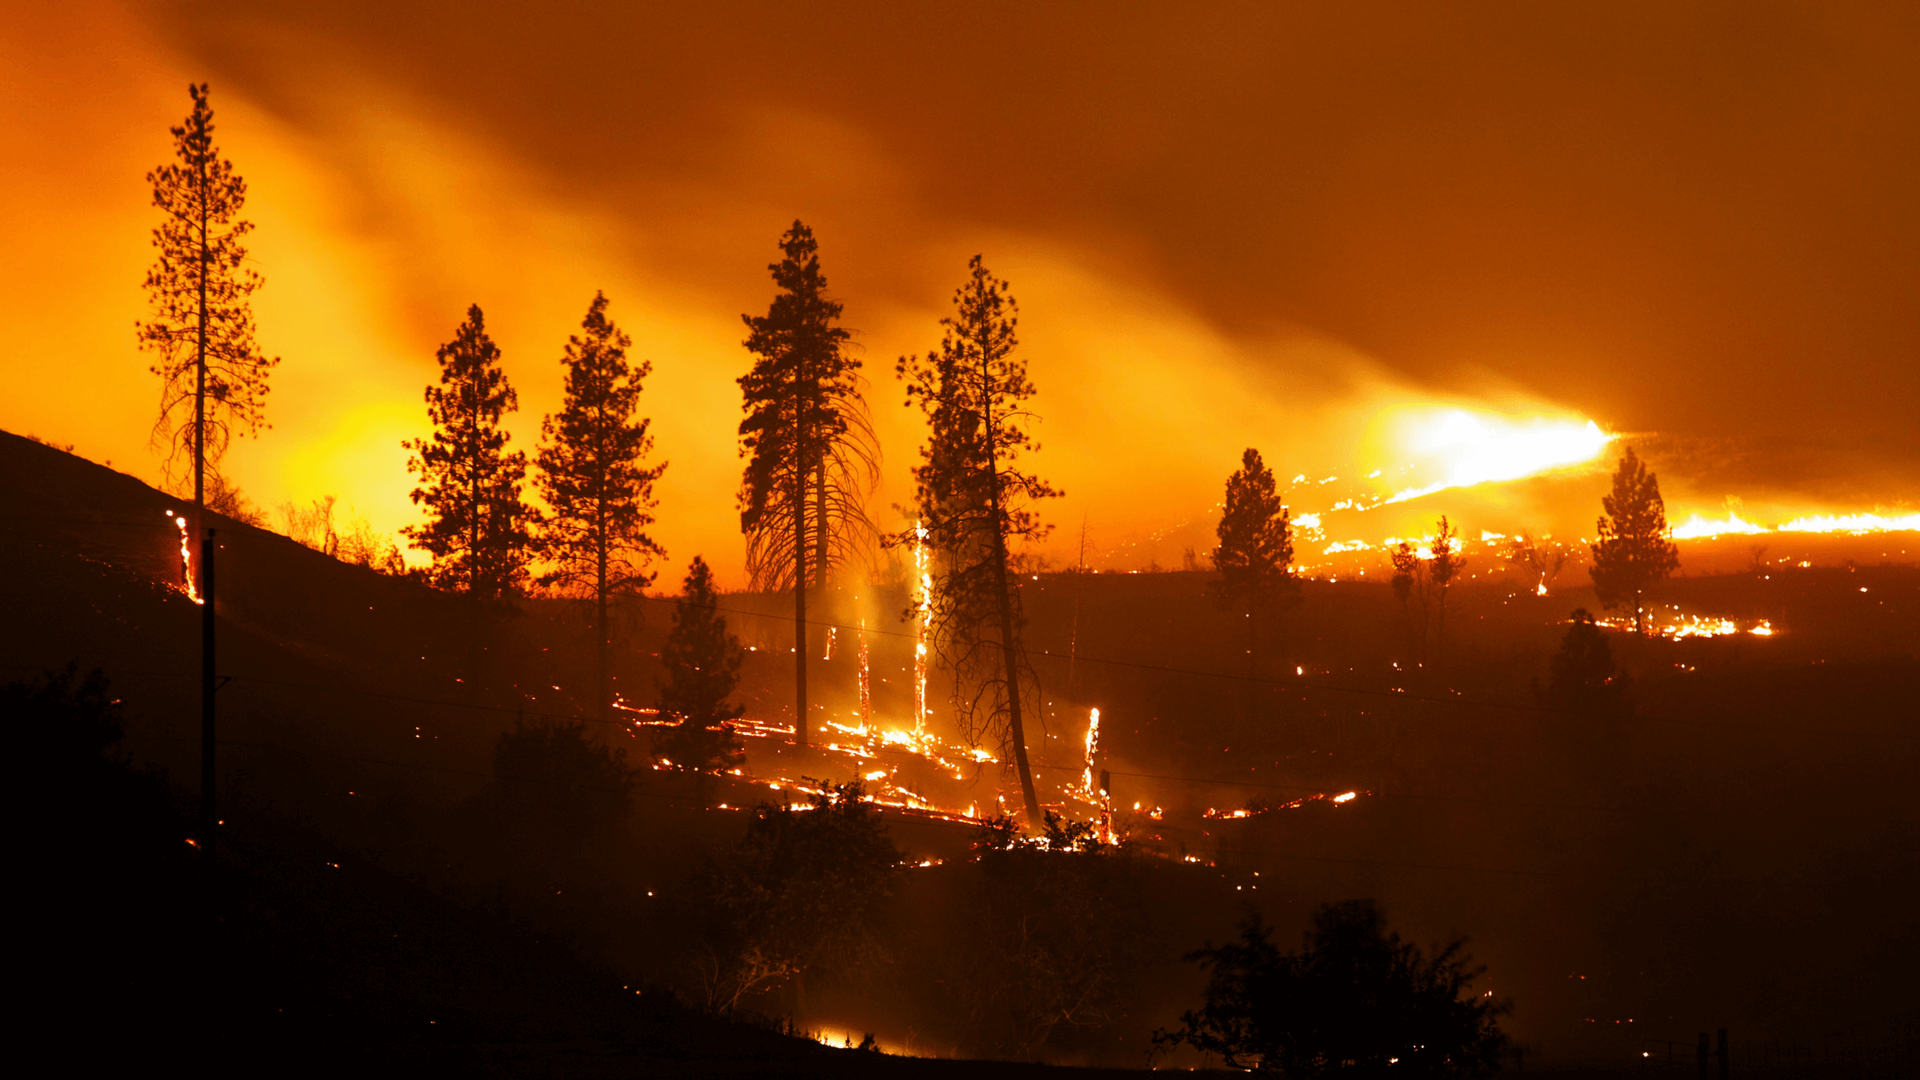 Wildfires: Emergency Preparedness and Citizen Communications